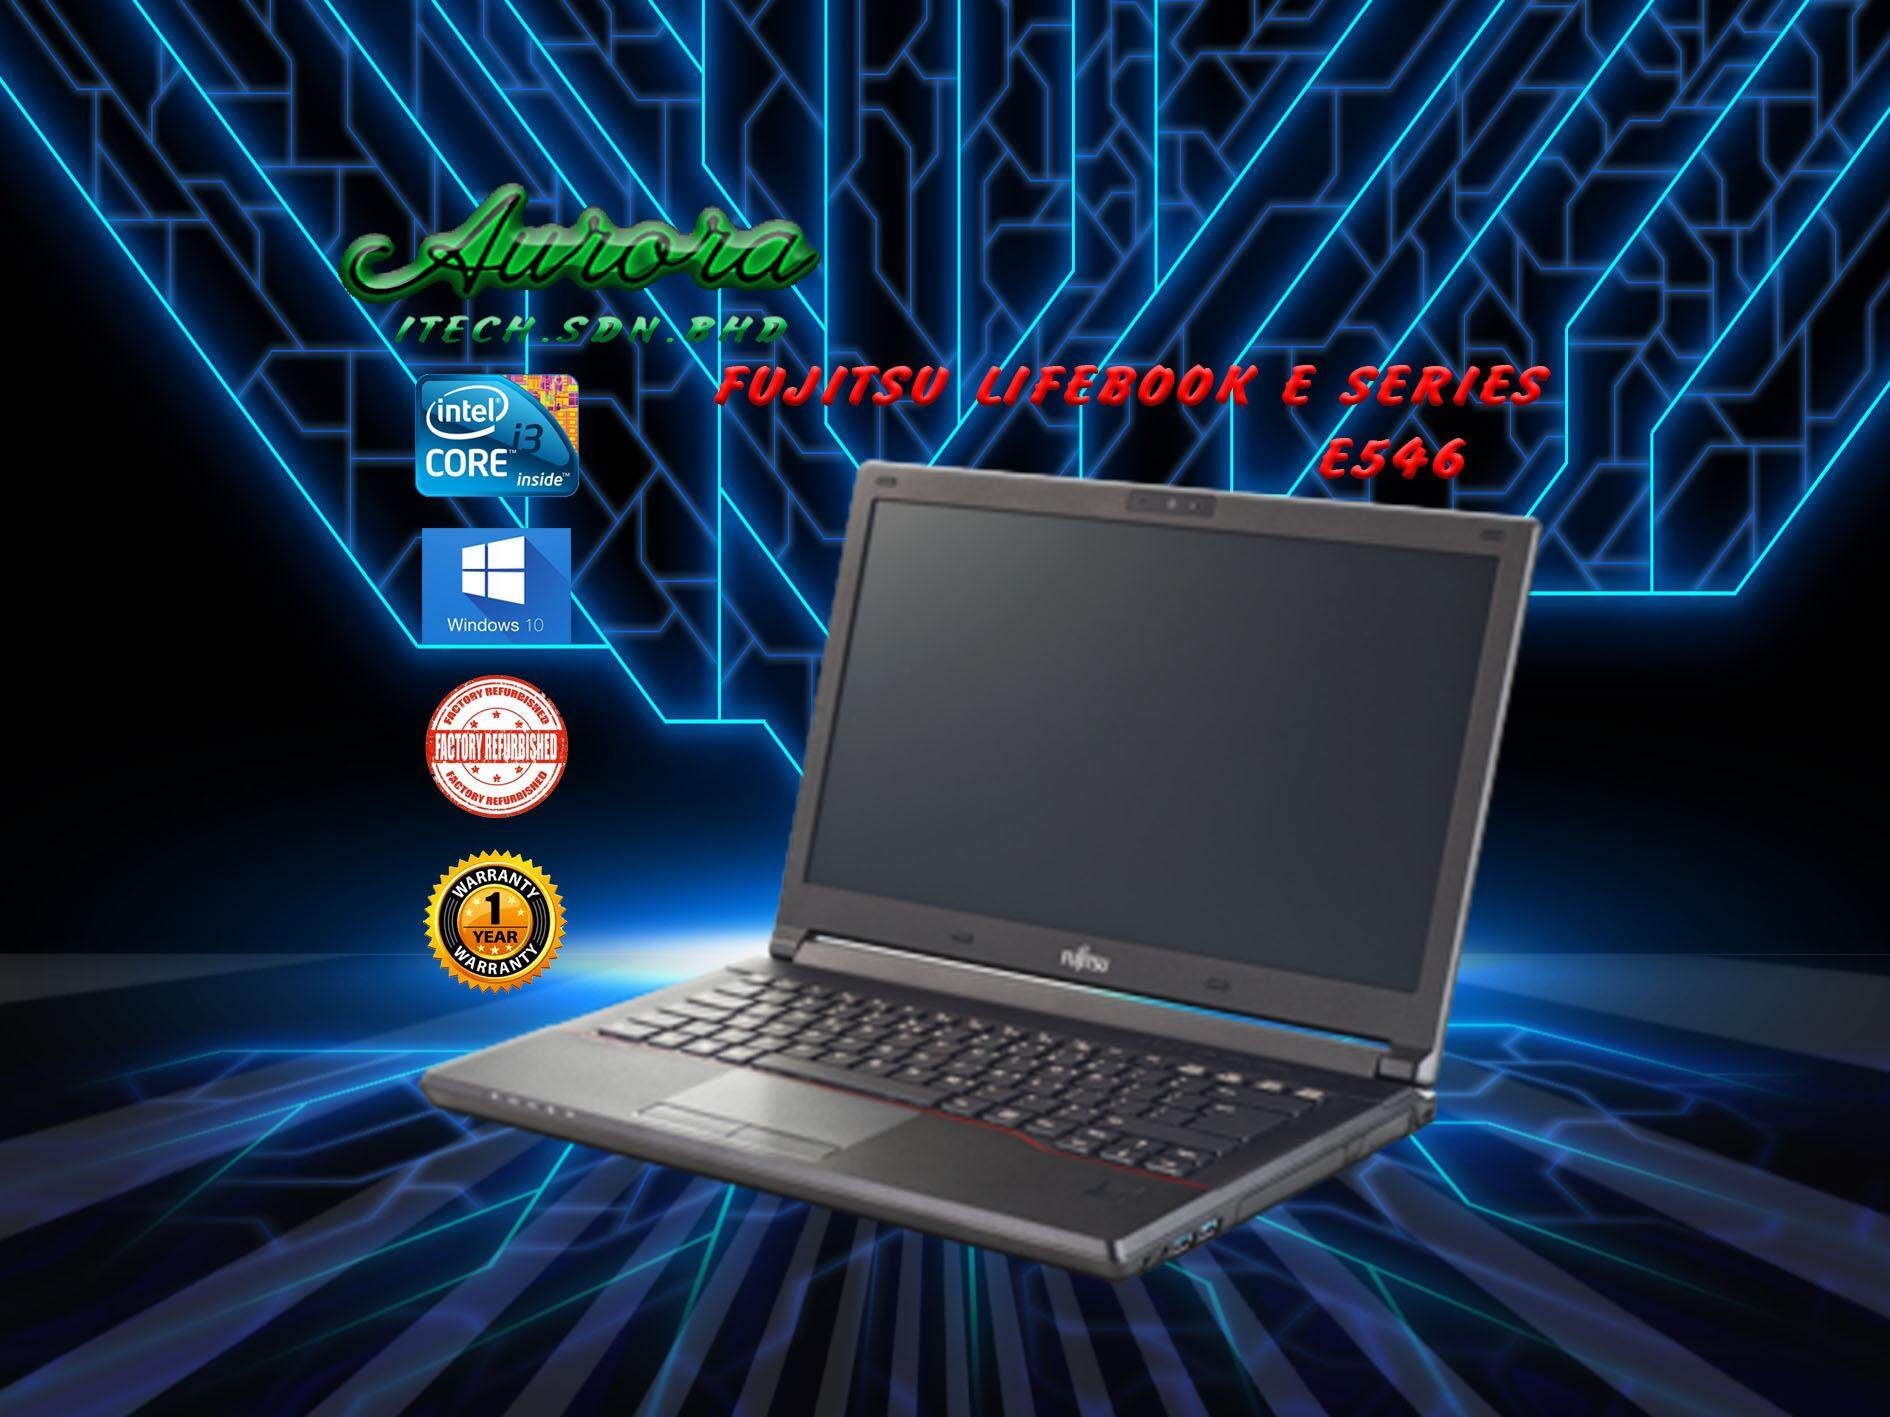 (REFURBISHED)Fujitsu Lifebook E546 / Intel® Core™ i3-6100U Processor / 8 GB DDR3 RAM / 128 GB SATA SSD / 14.1Inch / 1 YearWarranty,Free Mouse Malaysia